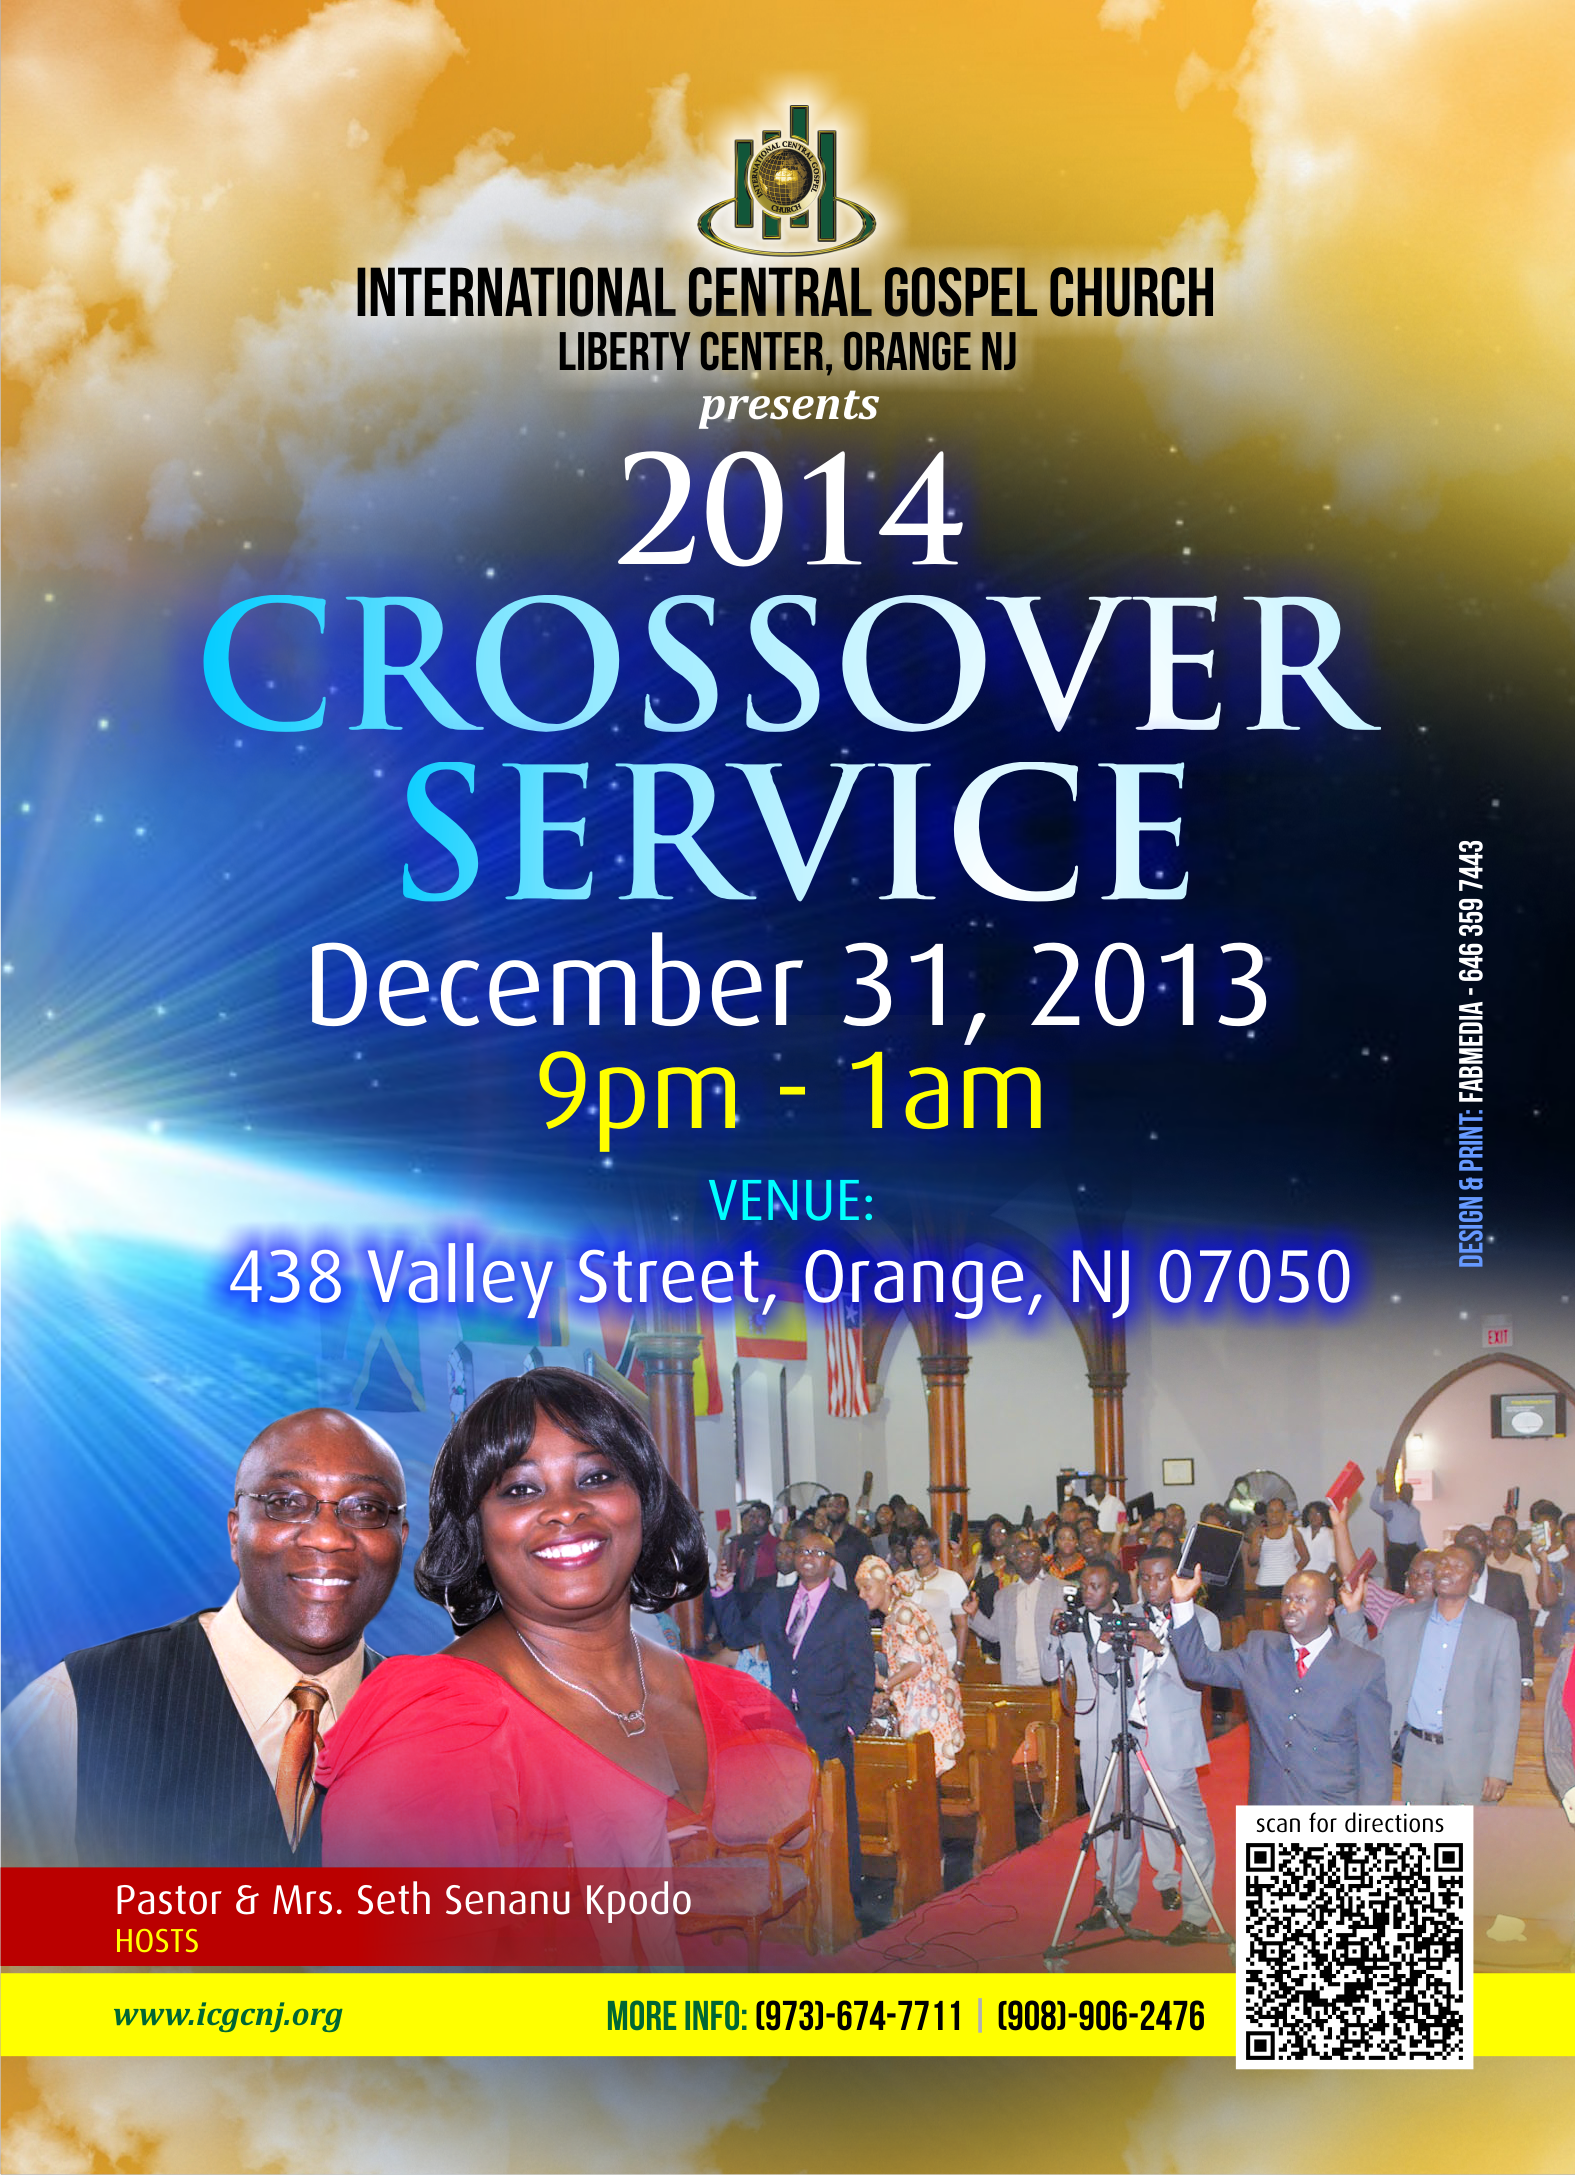 cross over service the christian journal cross over service crossover flyer